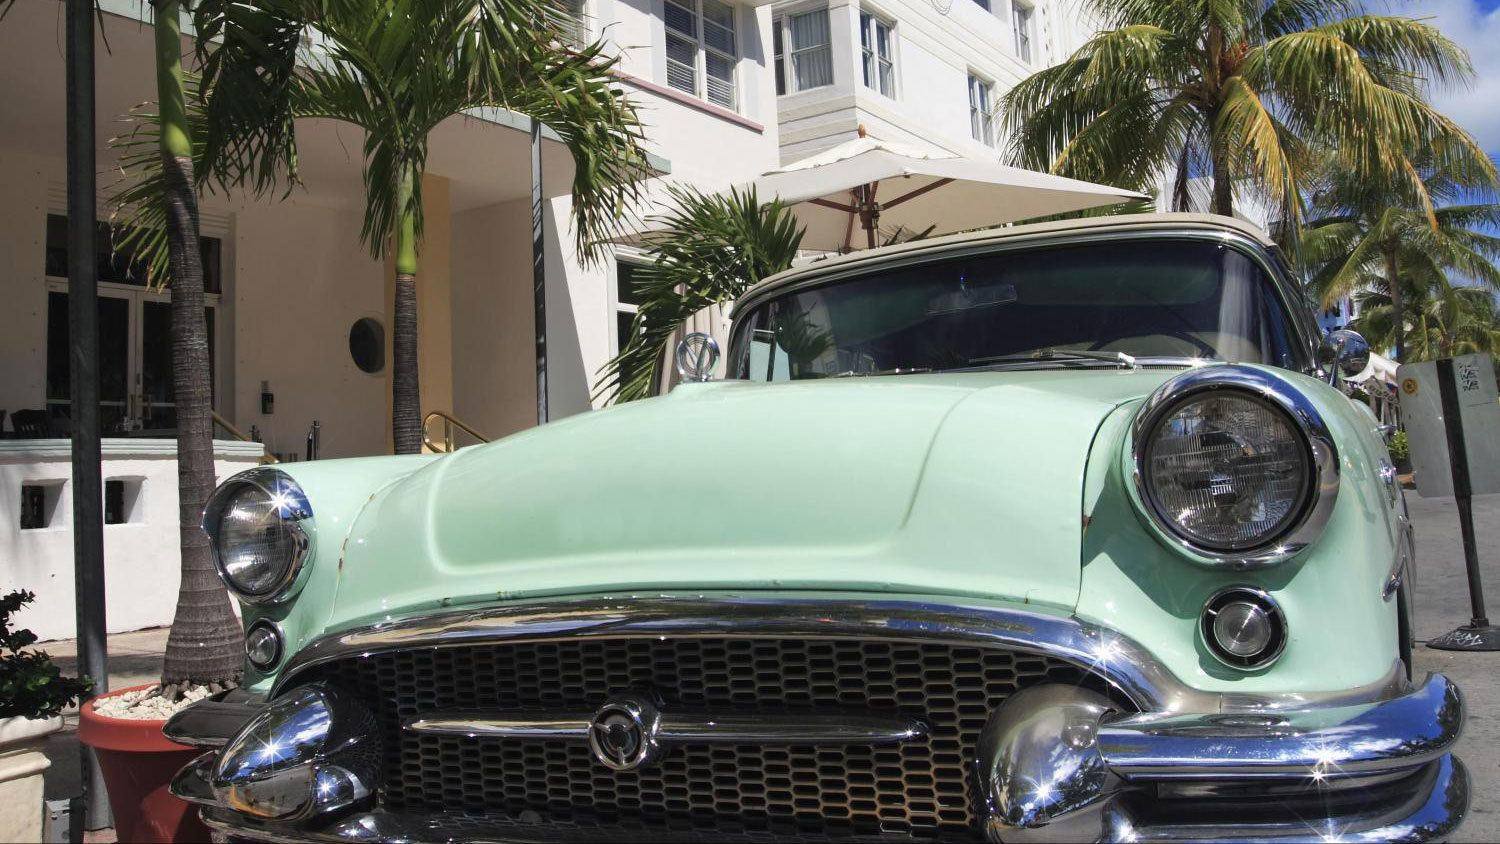 1950s style car on a street in Miami